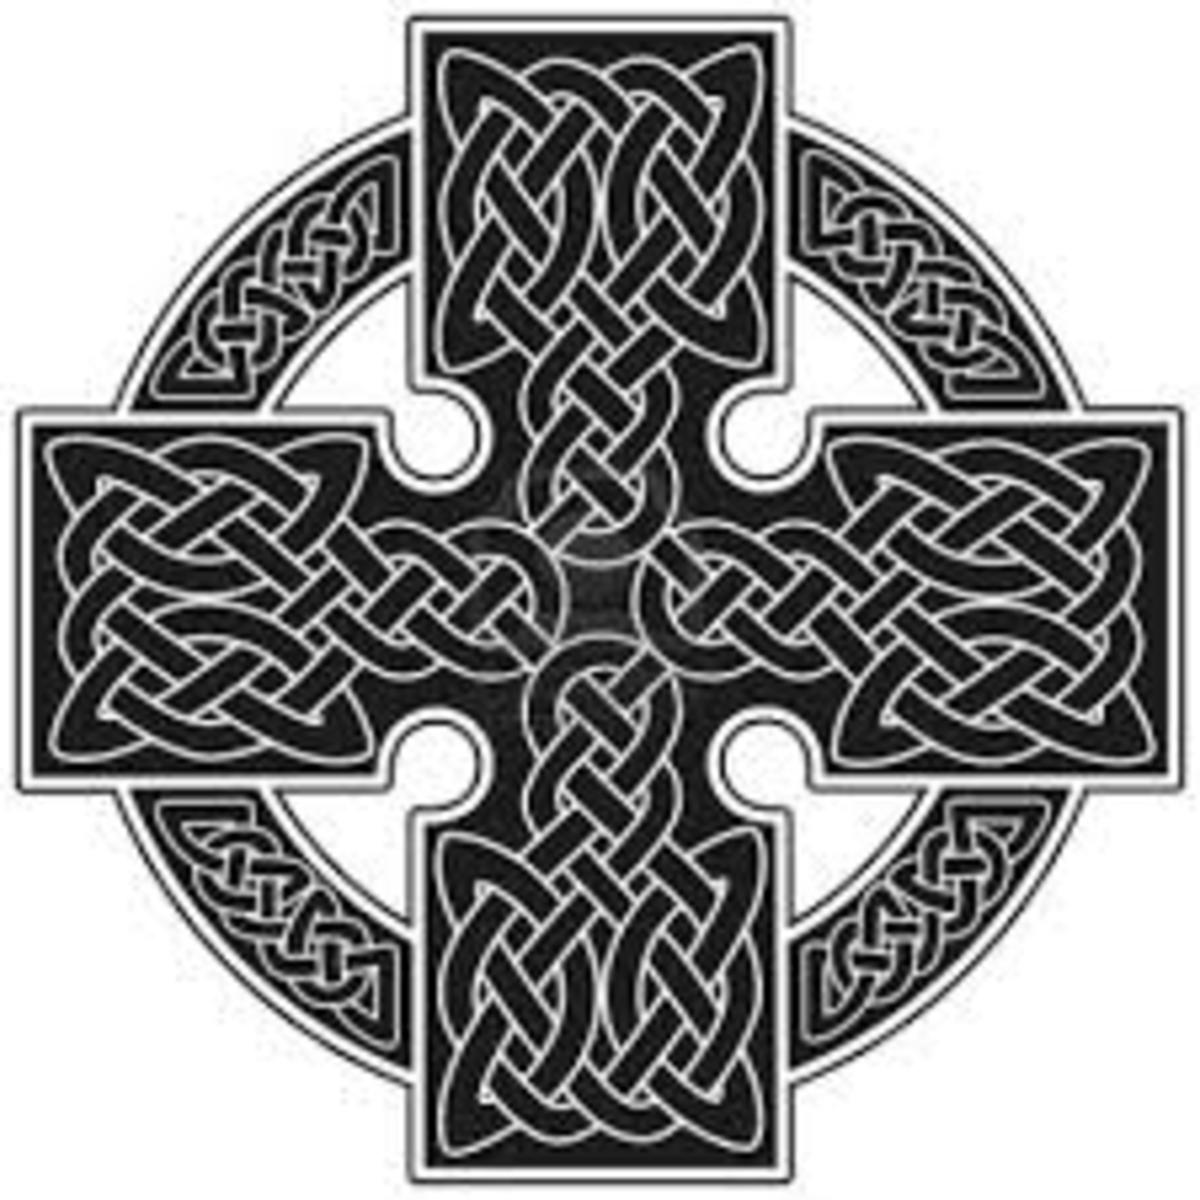 The Celtic Cross depicts the four directions surrounded by a hollow globe, coincidence?